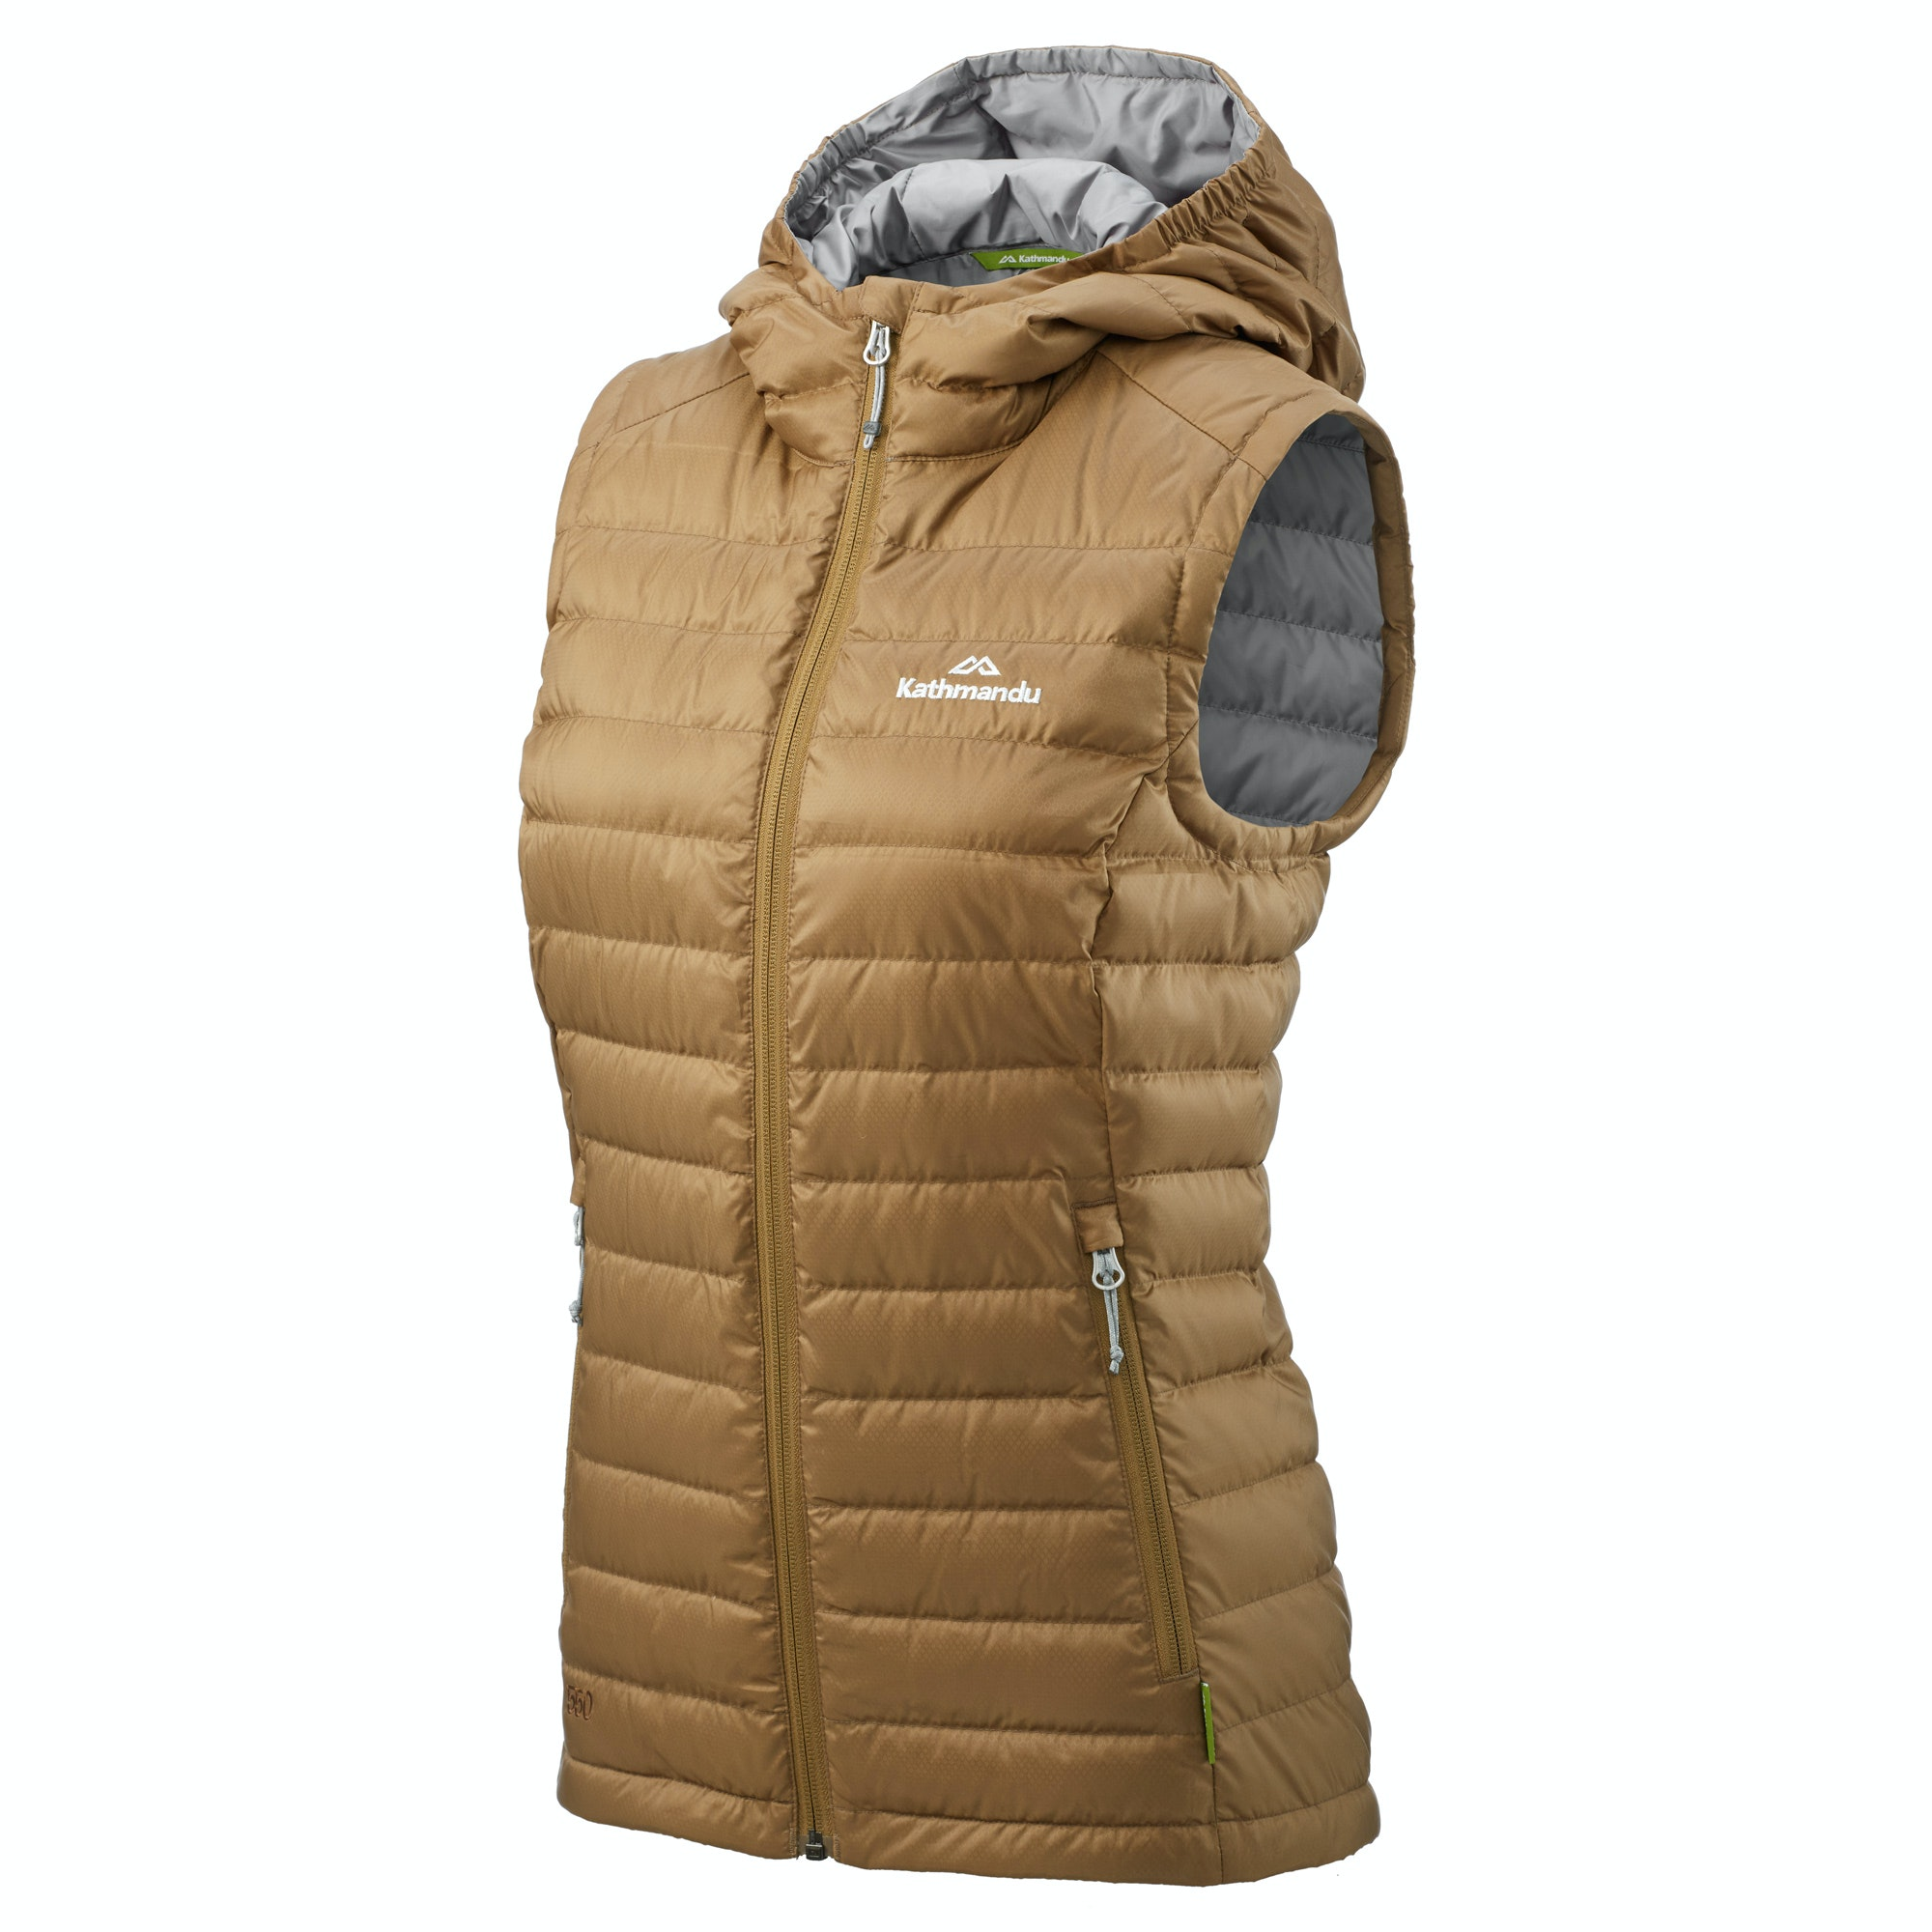 Kathmandu Heli Womens Lightweight Duck Down Warm Insulated